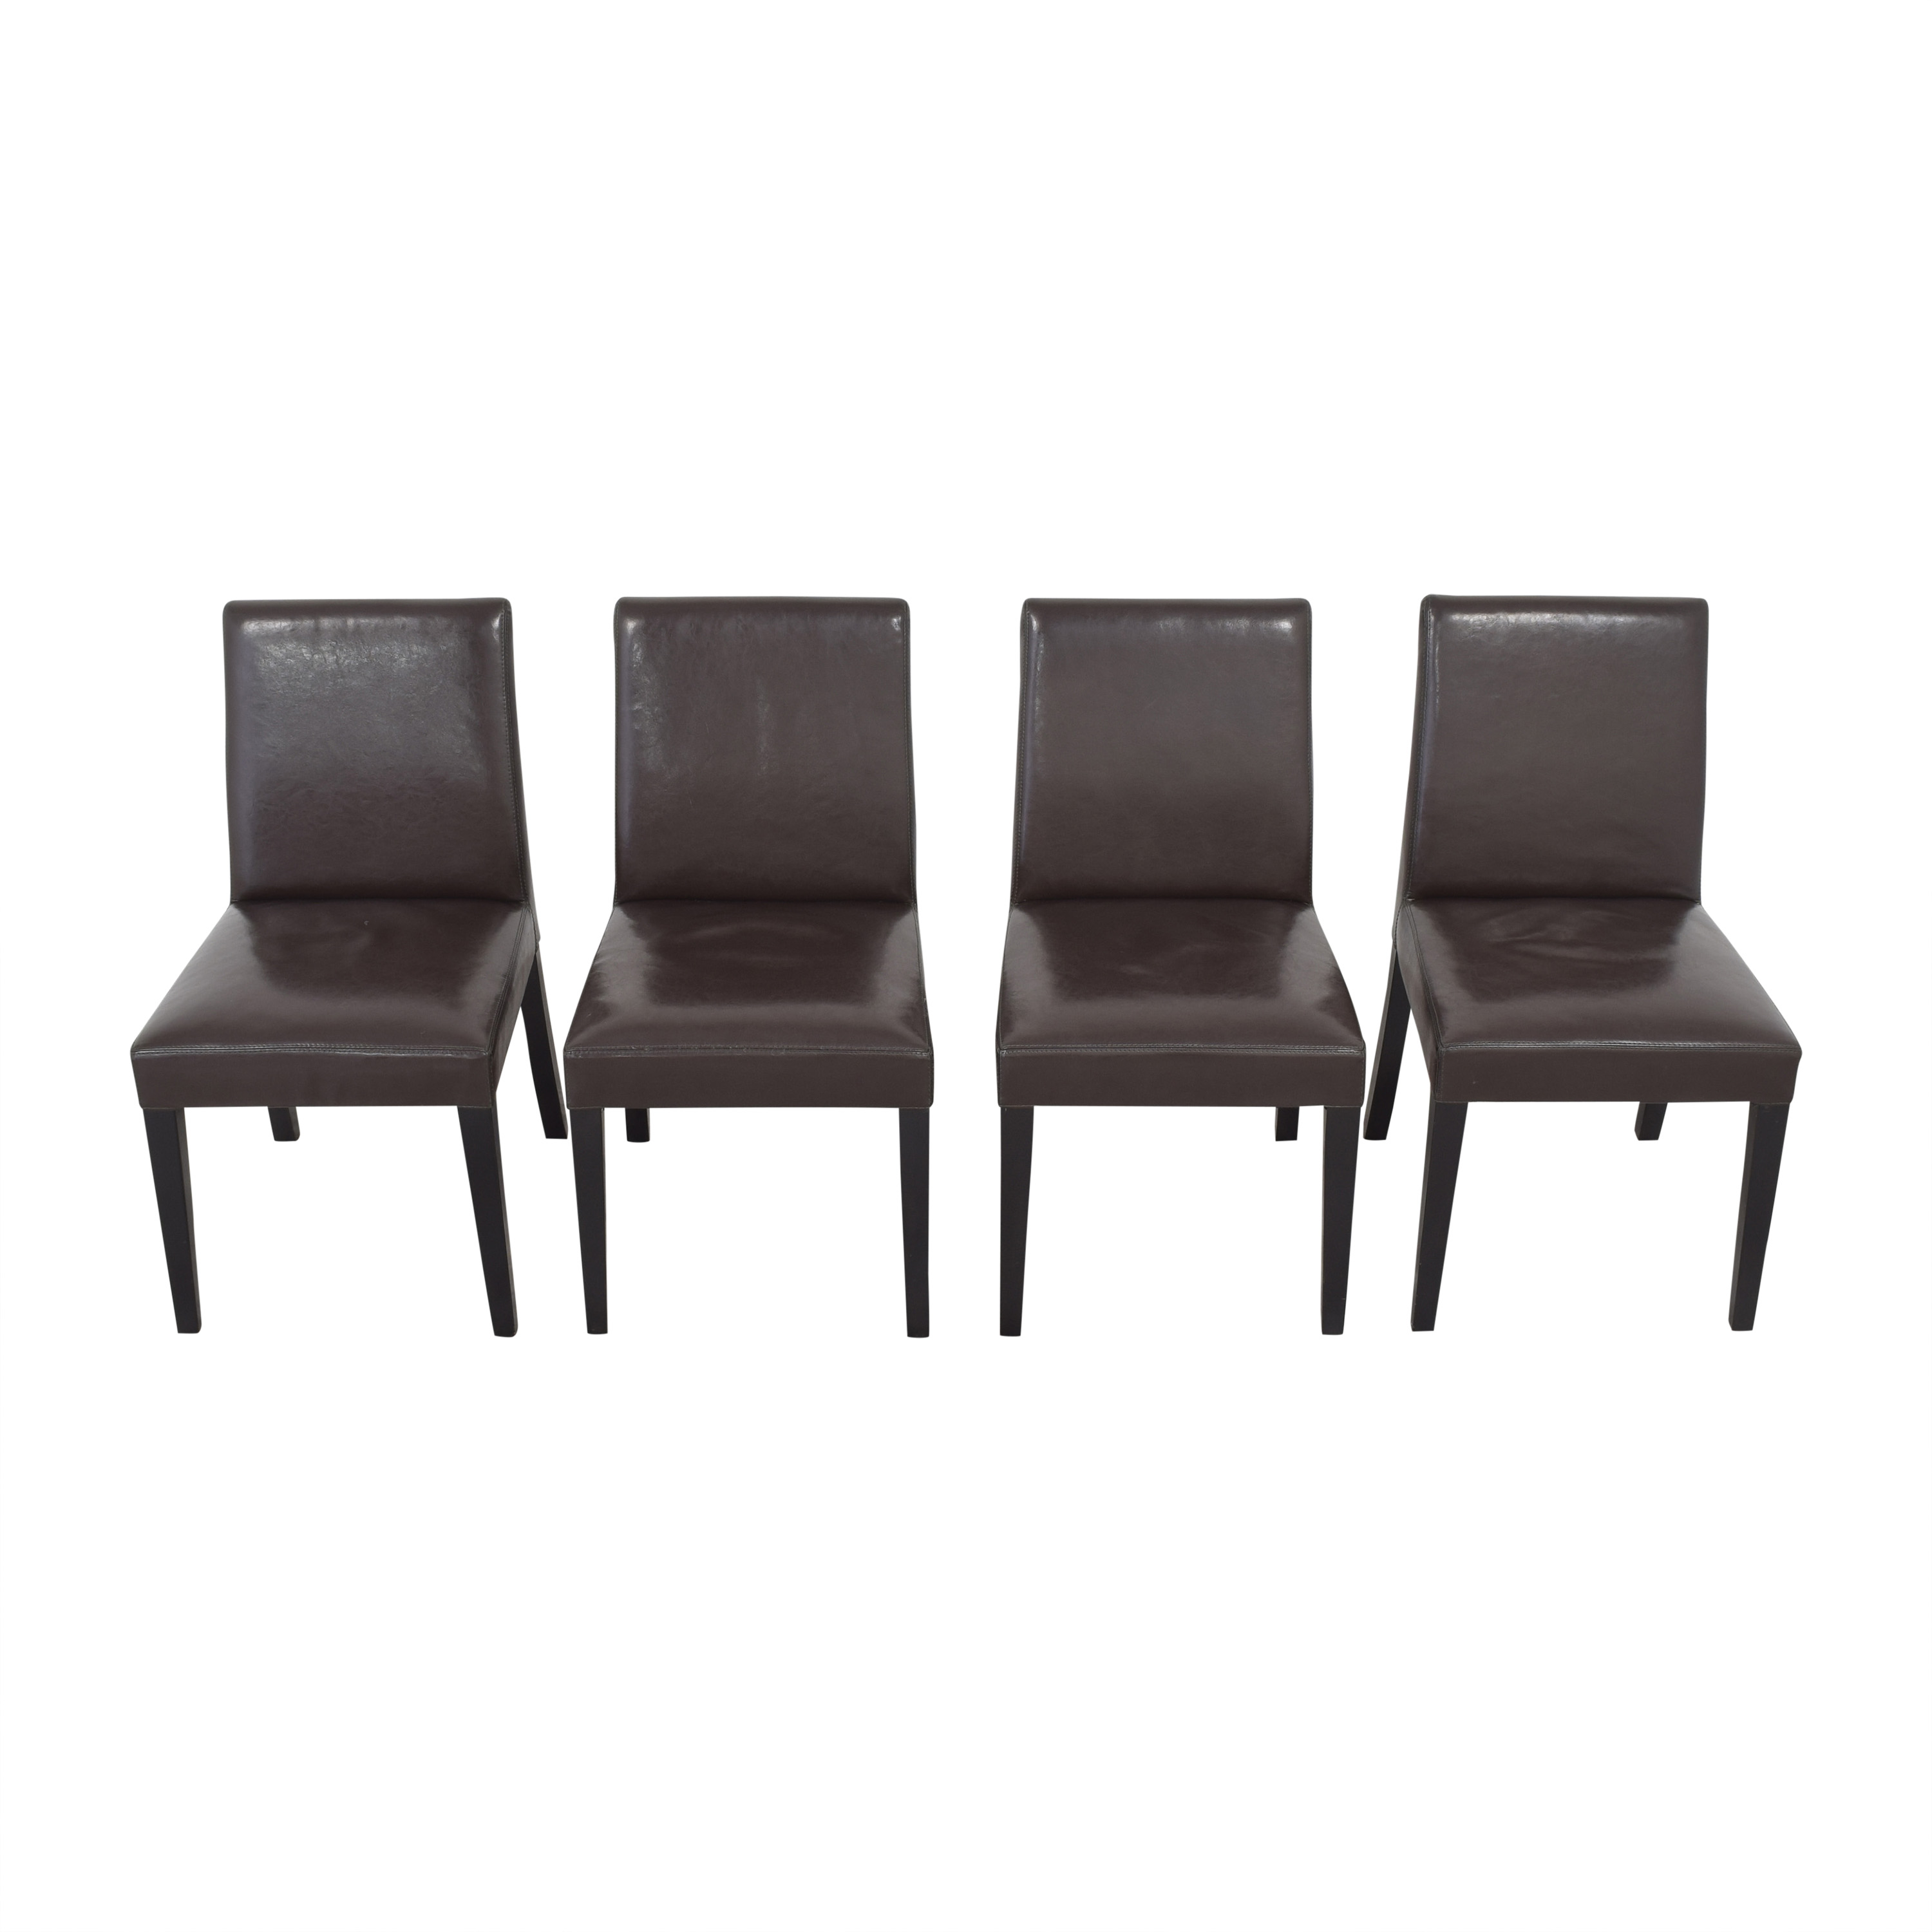 Crate & Barrel Crate & Barrel Pullman Side Chairs price